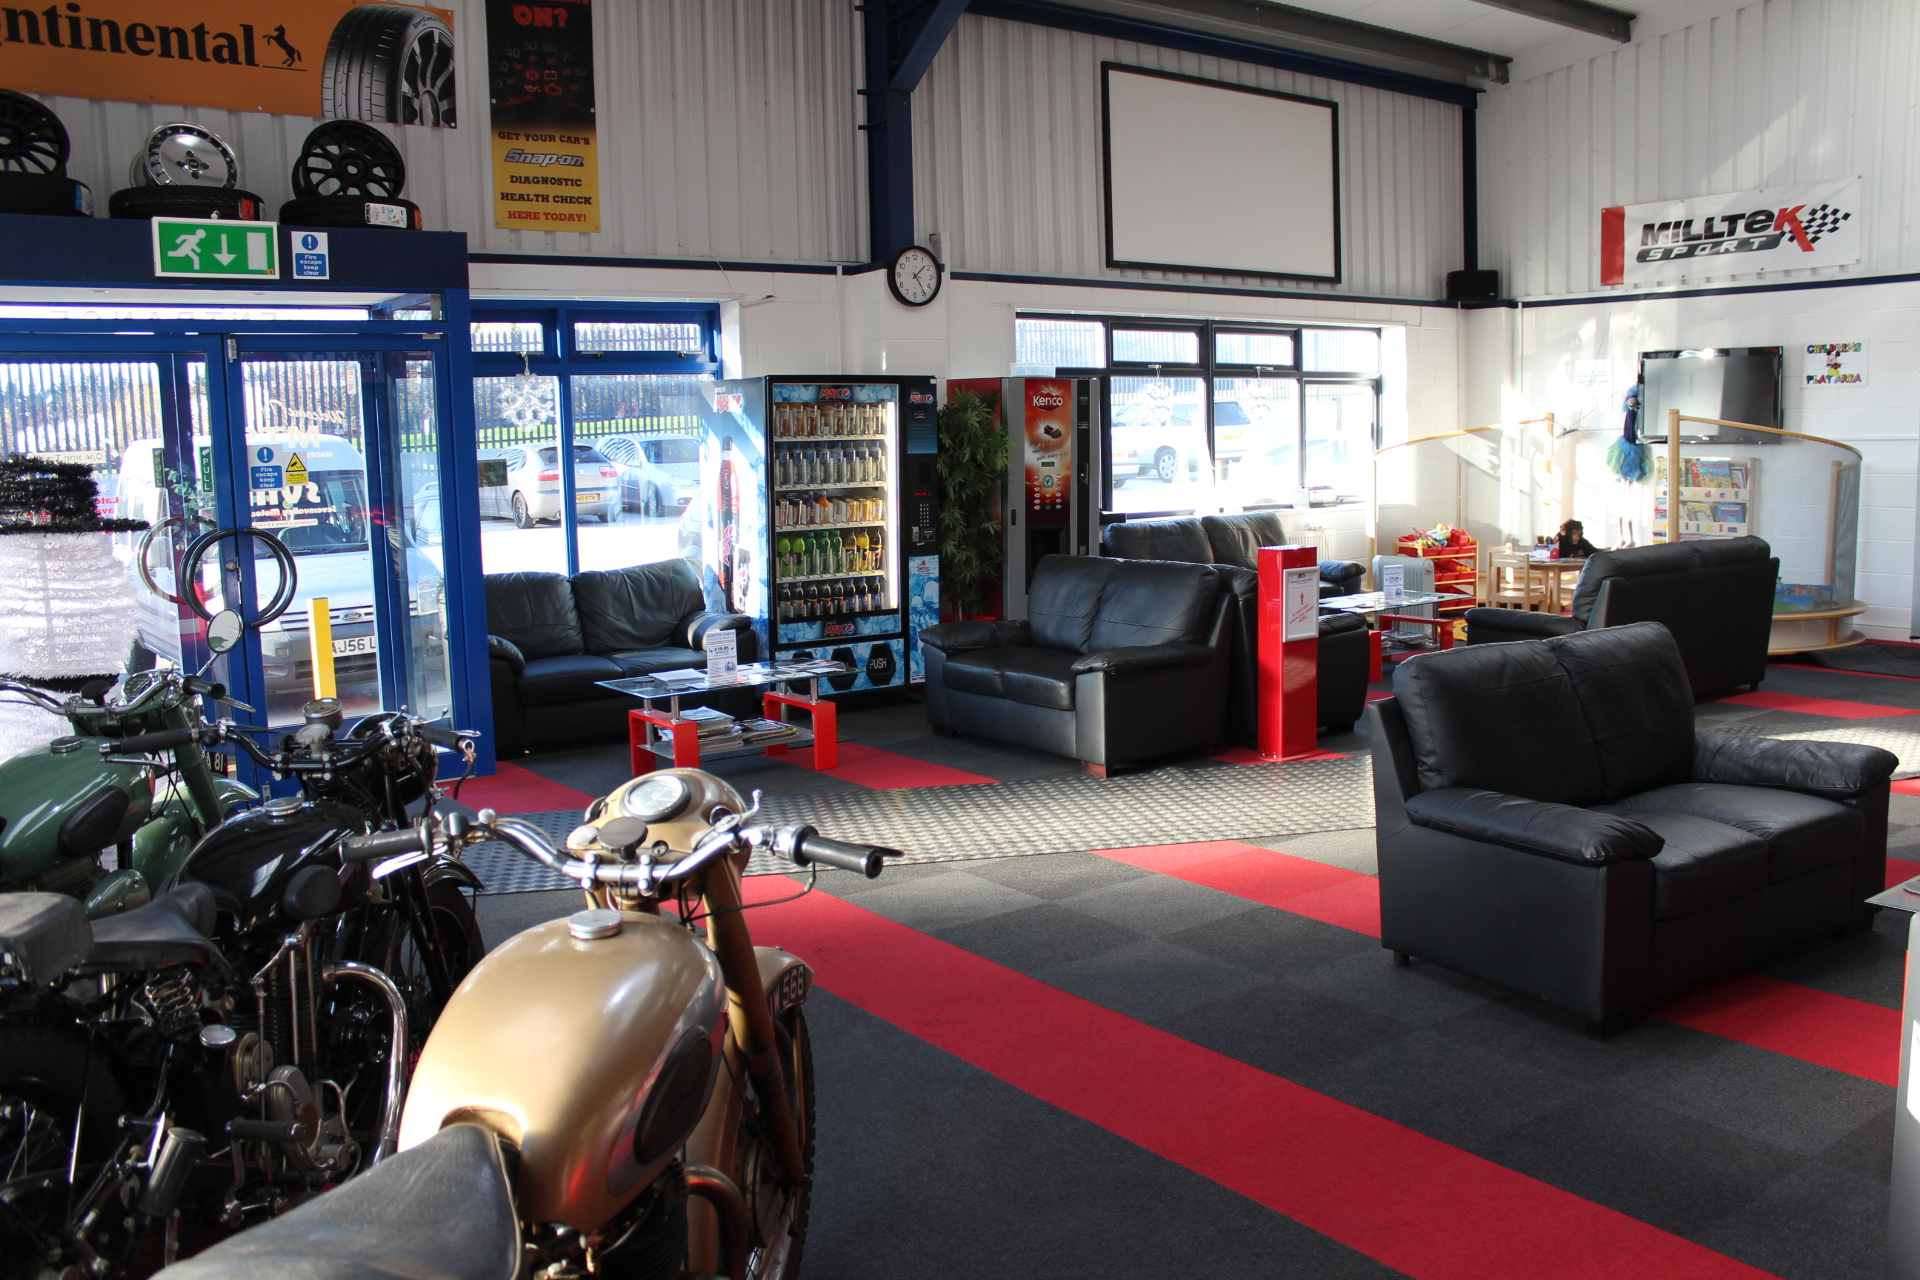 Take a seat whilst waiting for your MOT